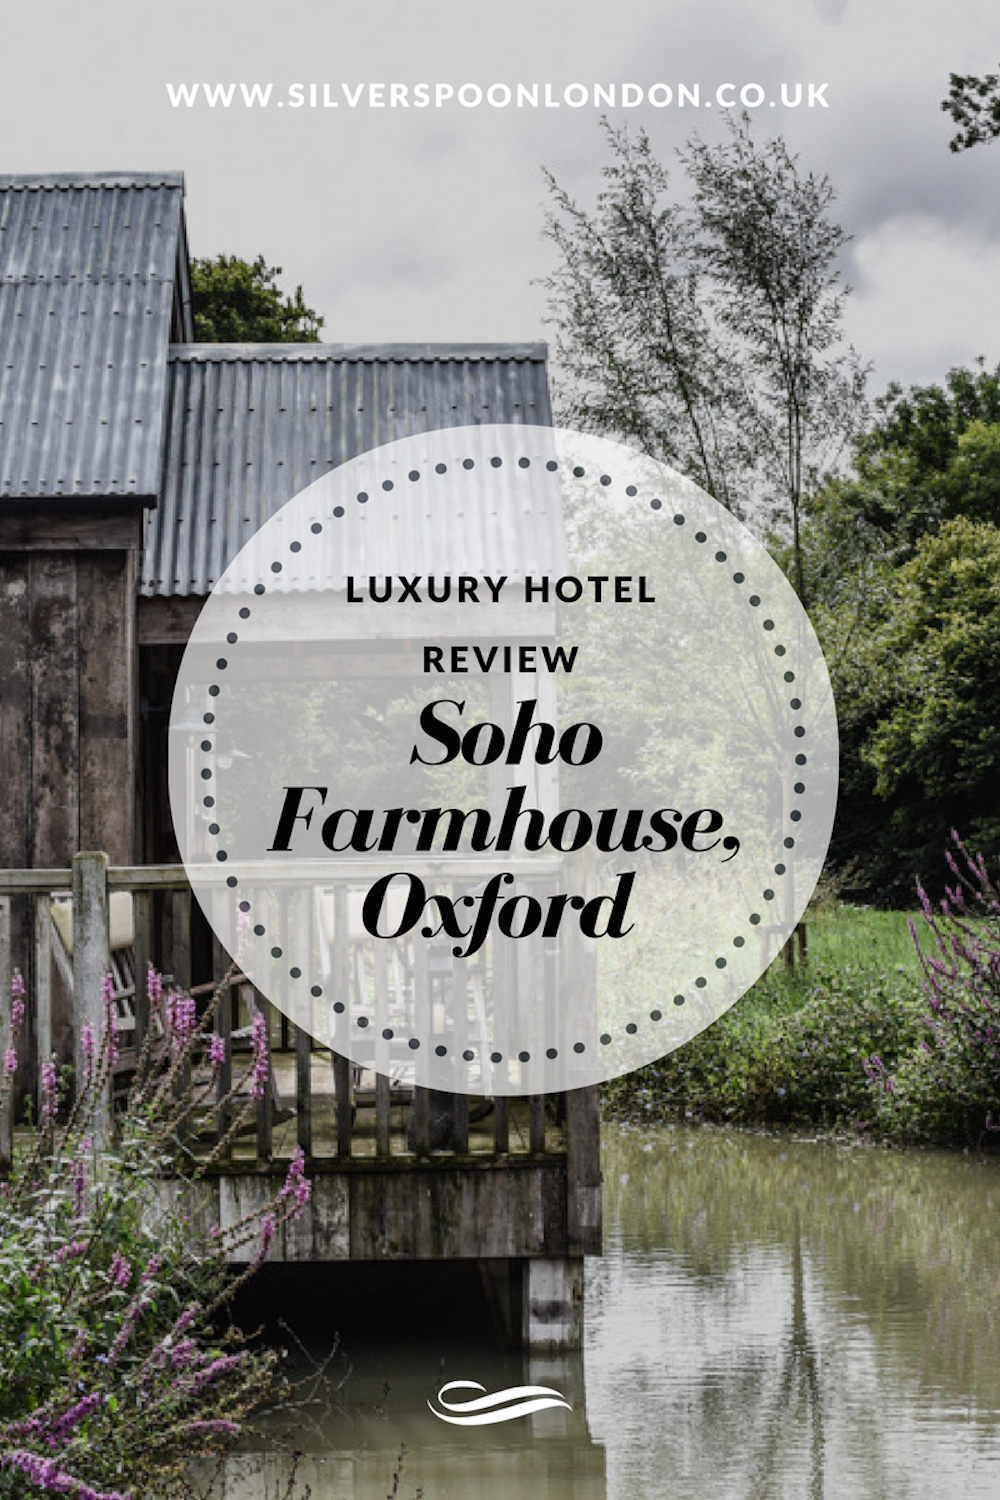 Luxury Hotel Review: Soho Farmhouse